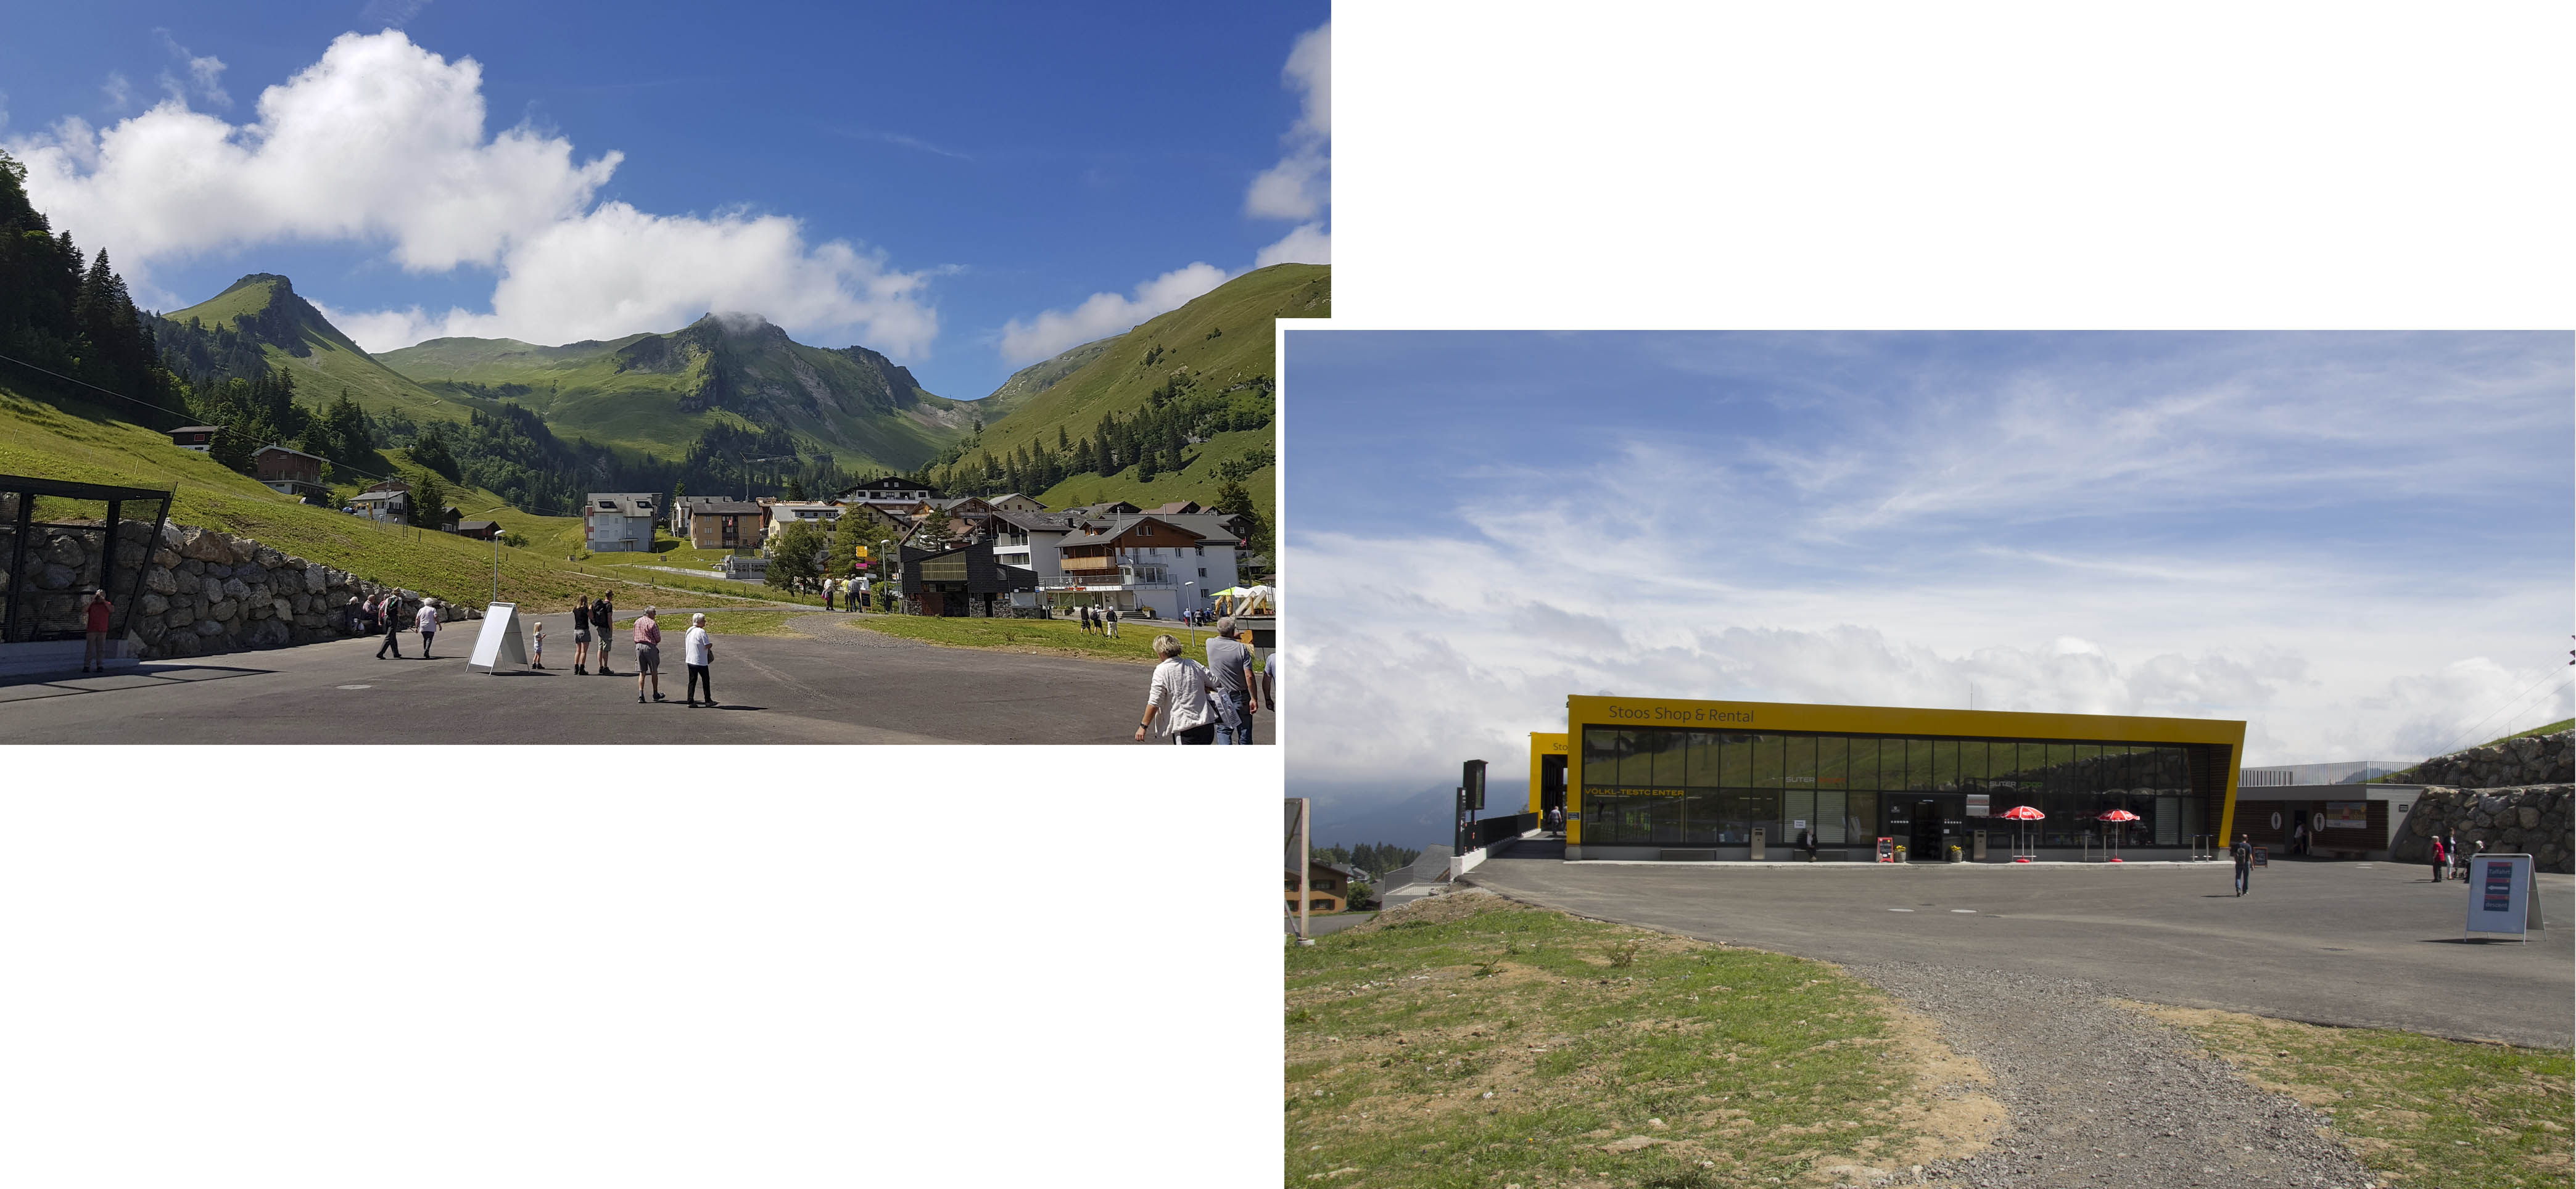 Funicular mountain station in the center of Stoos